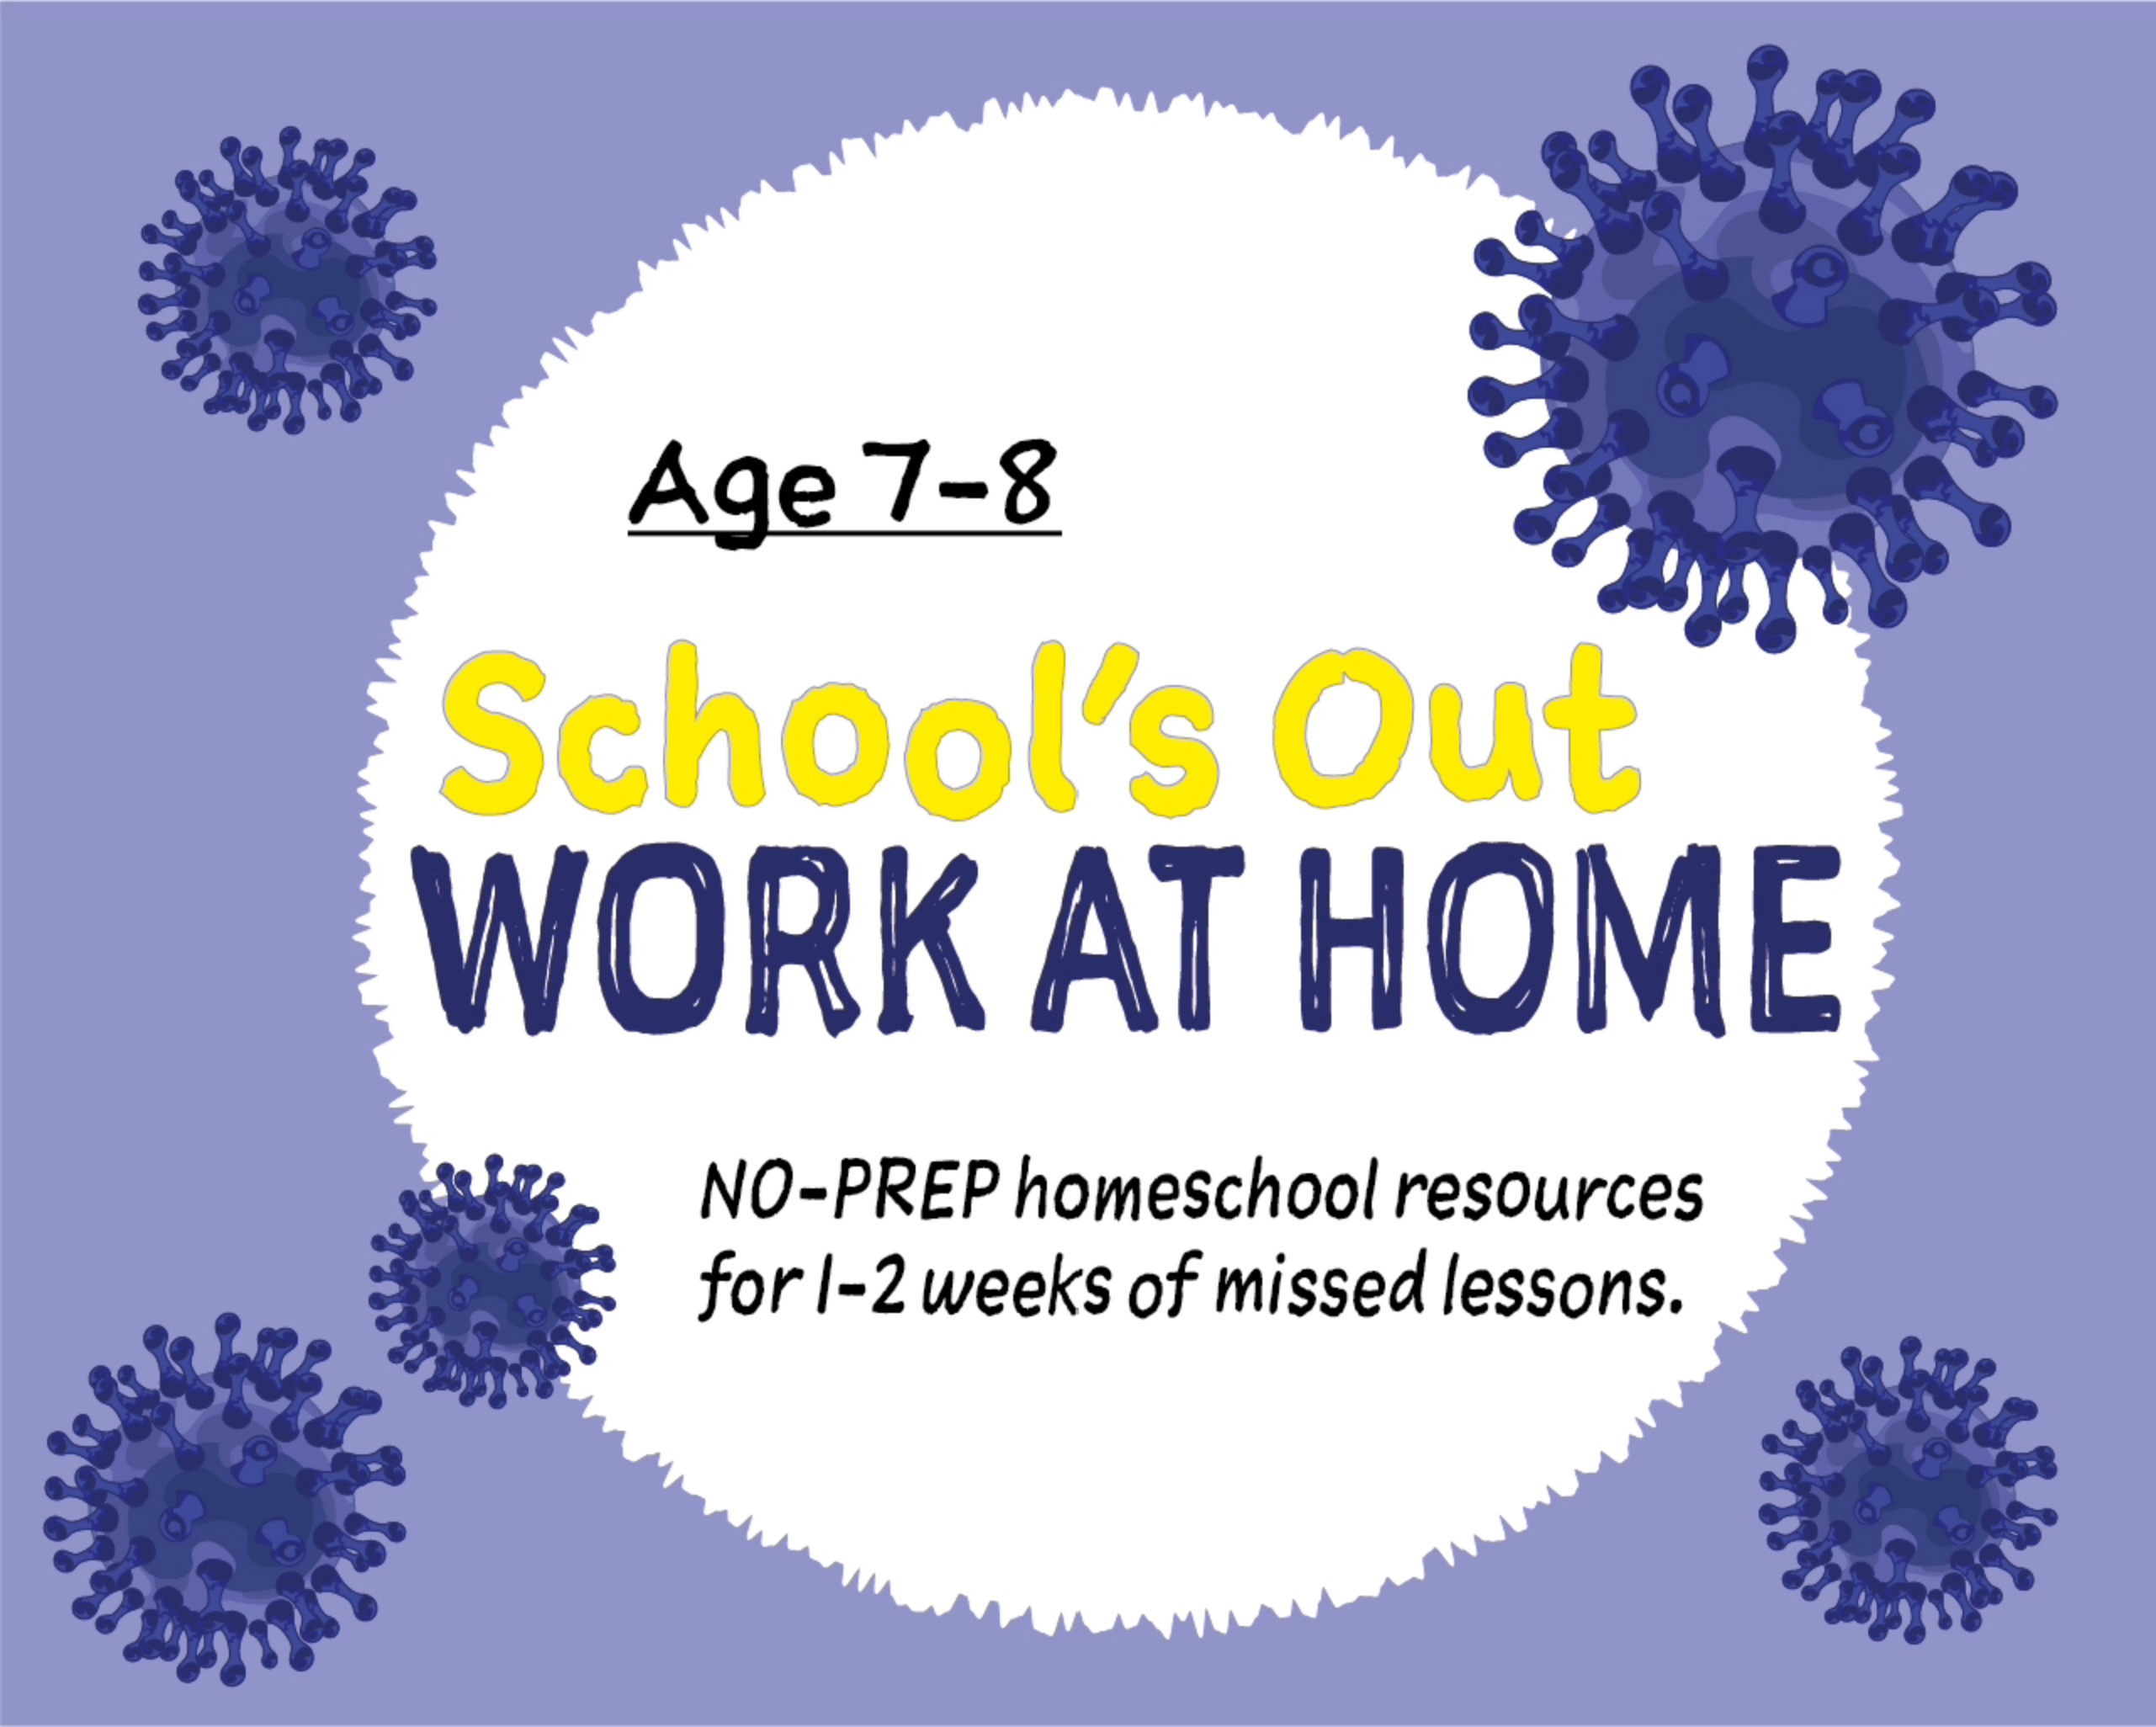 Schools Out For Coronavirus! Prepare For Schooling At Home (age 7-8 years) (year 3) (grade 2)